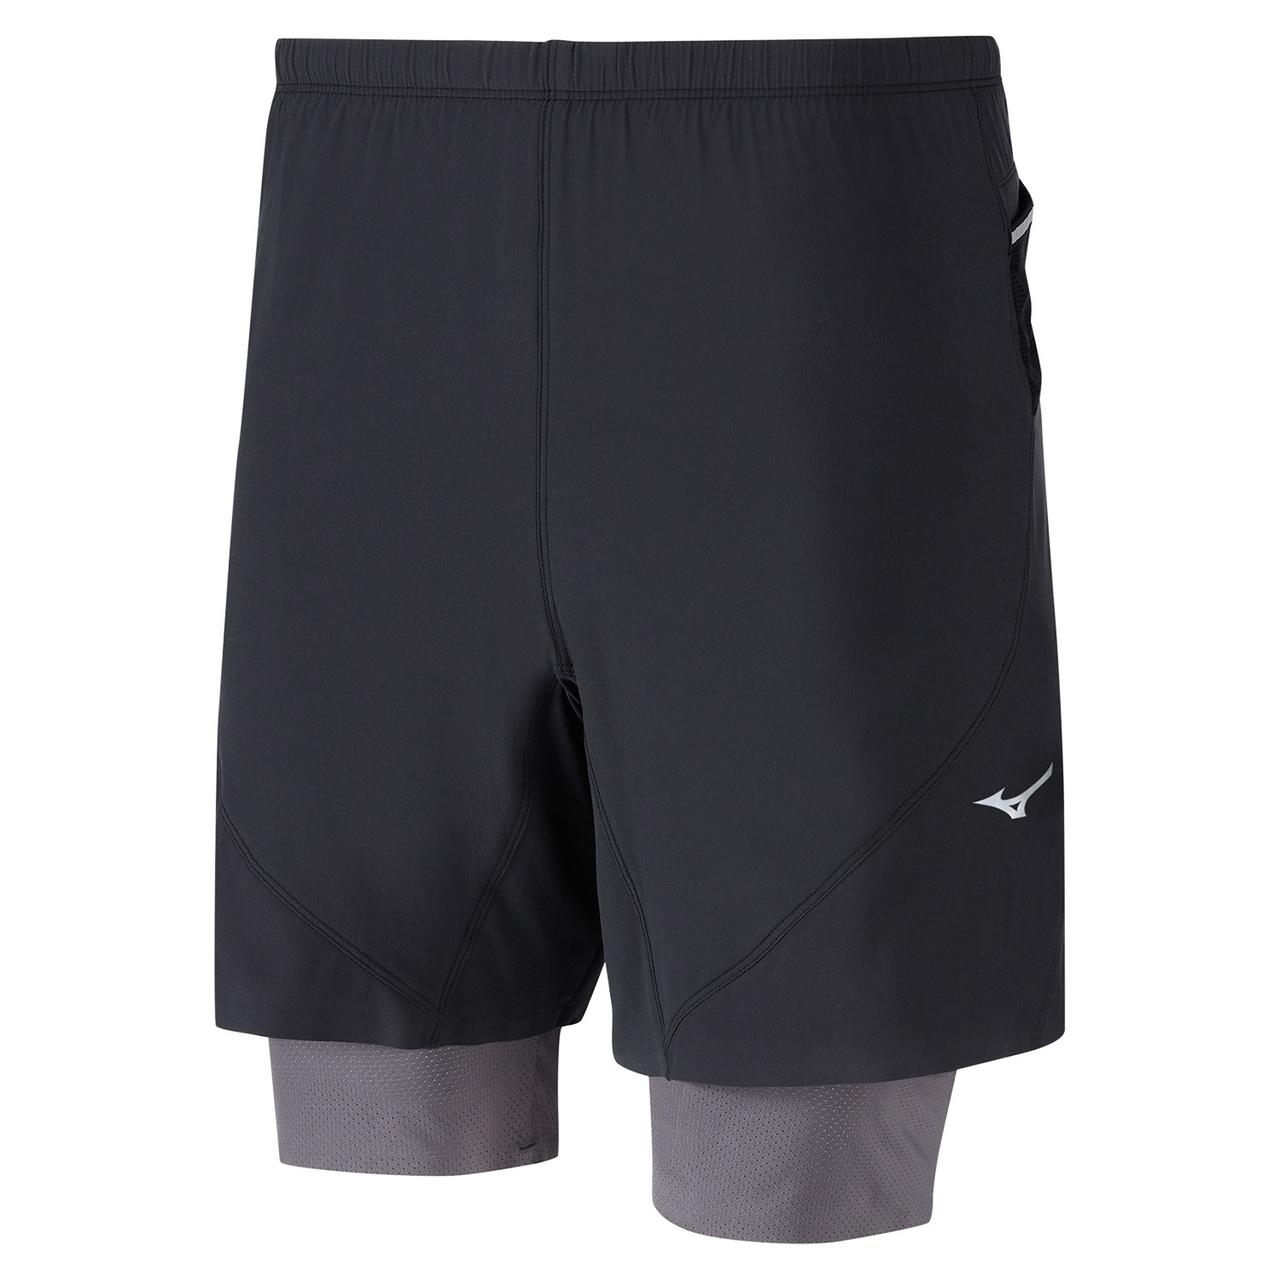 Шорты для бега Mizuno Endura 7.5 2in1 Short J2GB8528-09